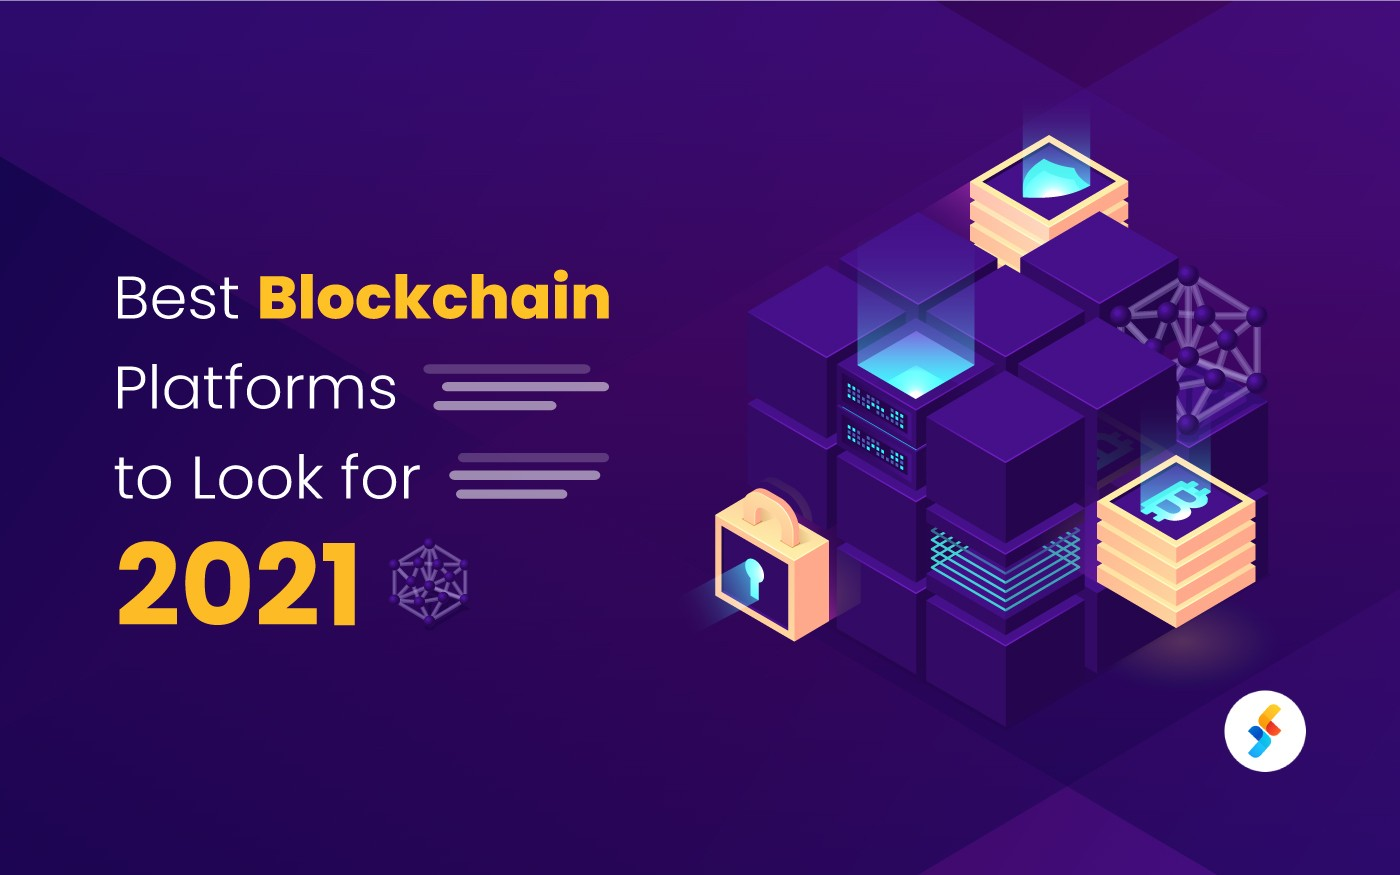 Best Blockchain Platforms to Look For in 2021